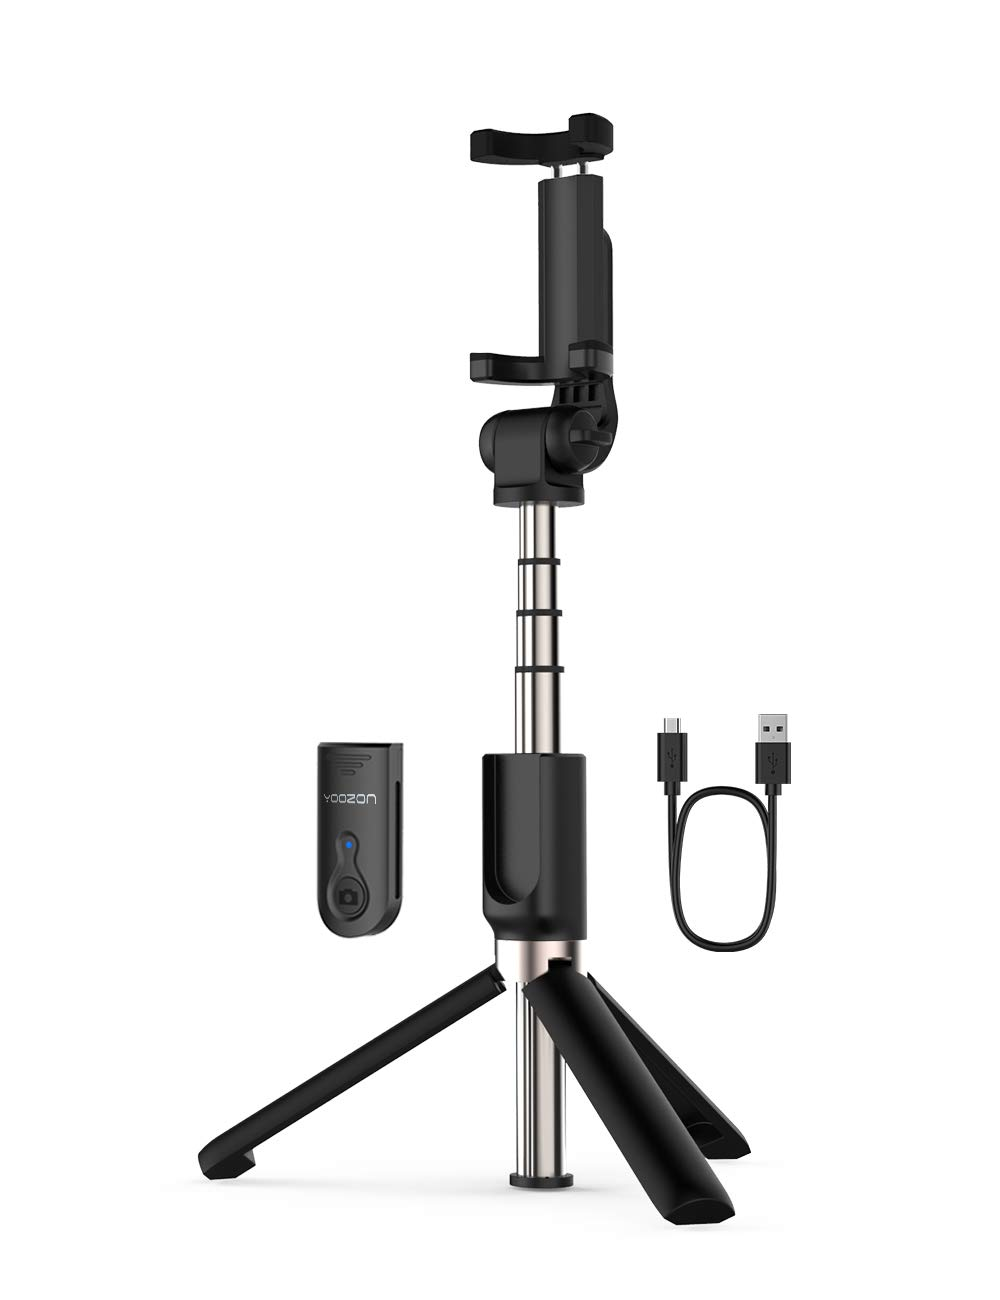 Last Minute Gift Ideas For The Minimalist Digital Nomad selfie stick tripod